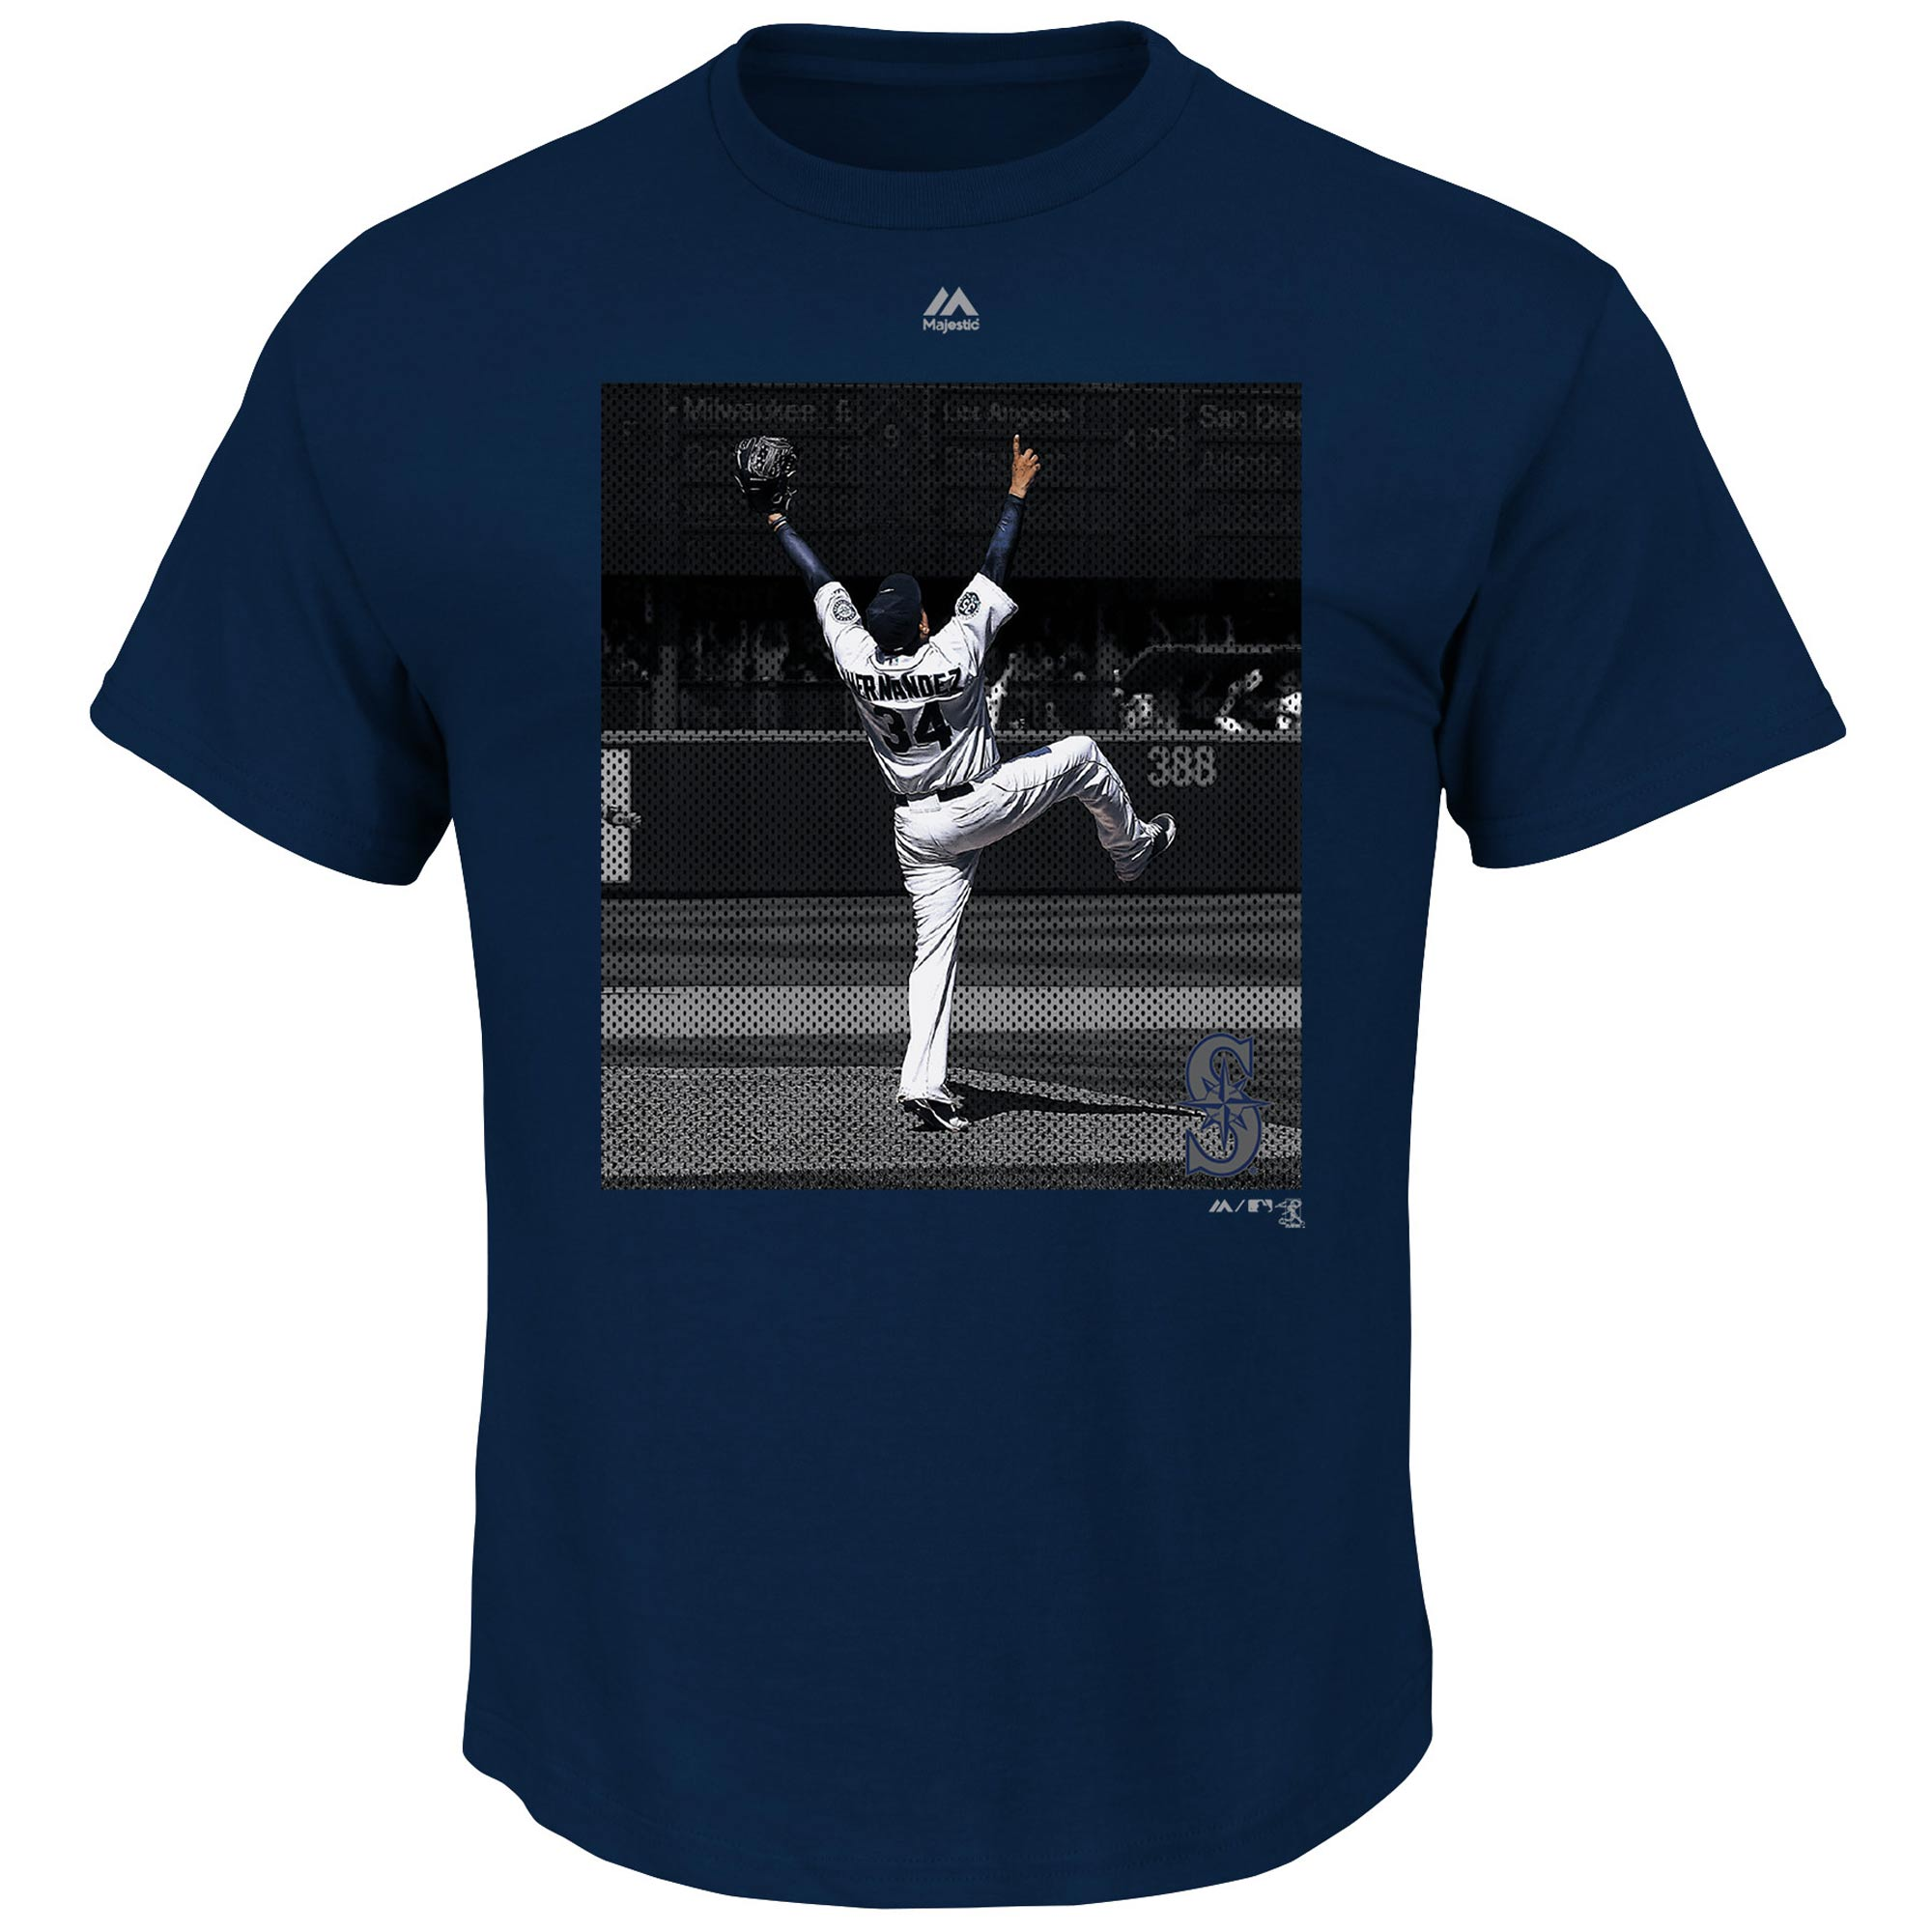 Felix Hernandez Seattle Mariners Majestic Heat Of The Moment T-Shirt - Navy